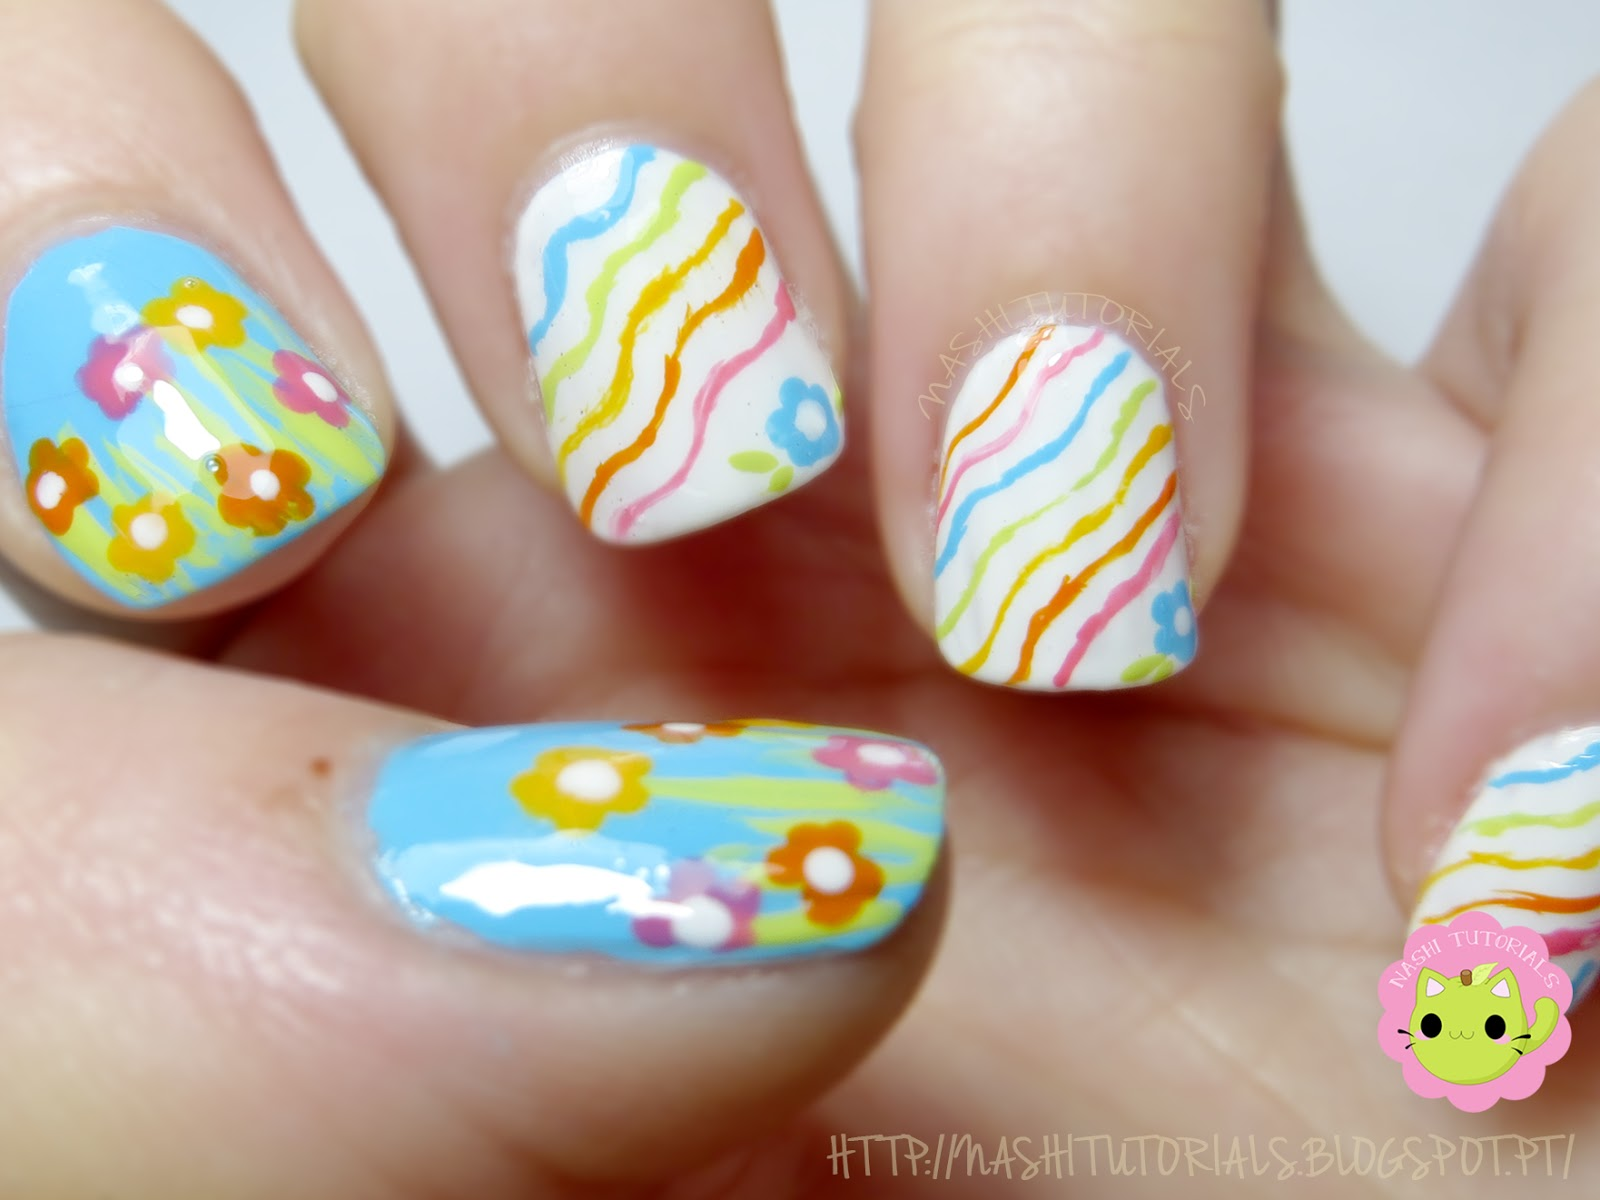 Nashi Tutorials Easter Nail Art Wavy Lines And Flowers